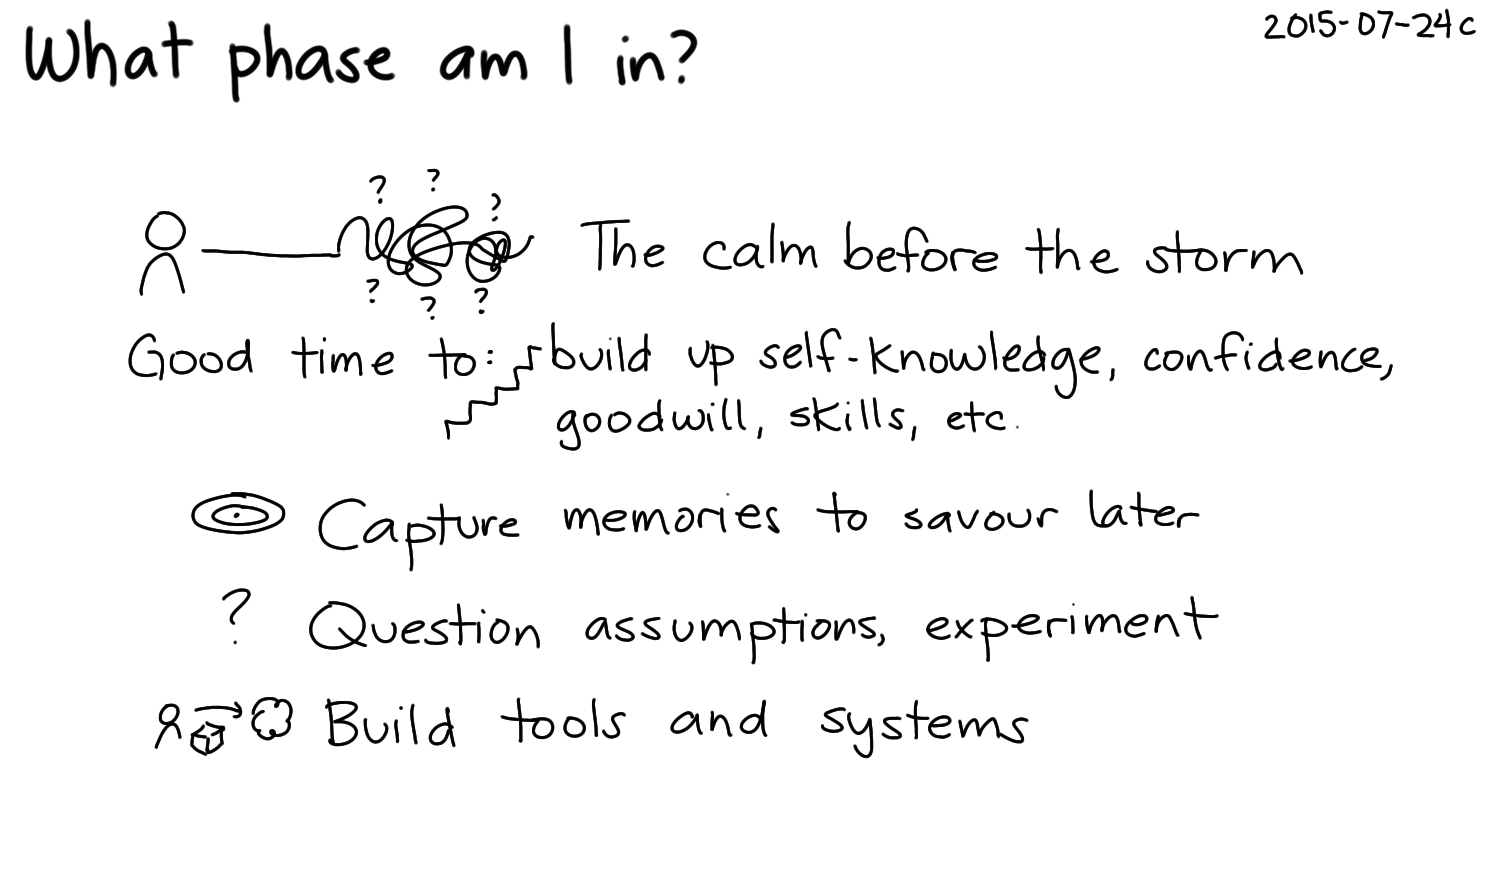 2015-07-24c What phase am I in -- index card #pace #phase #lifecycle.png